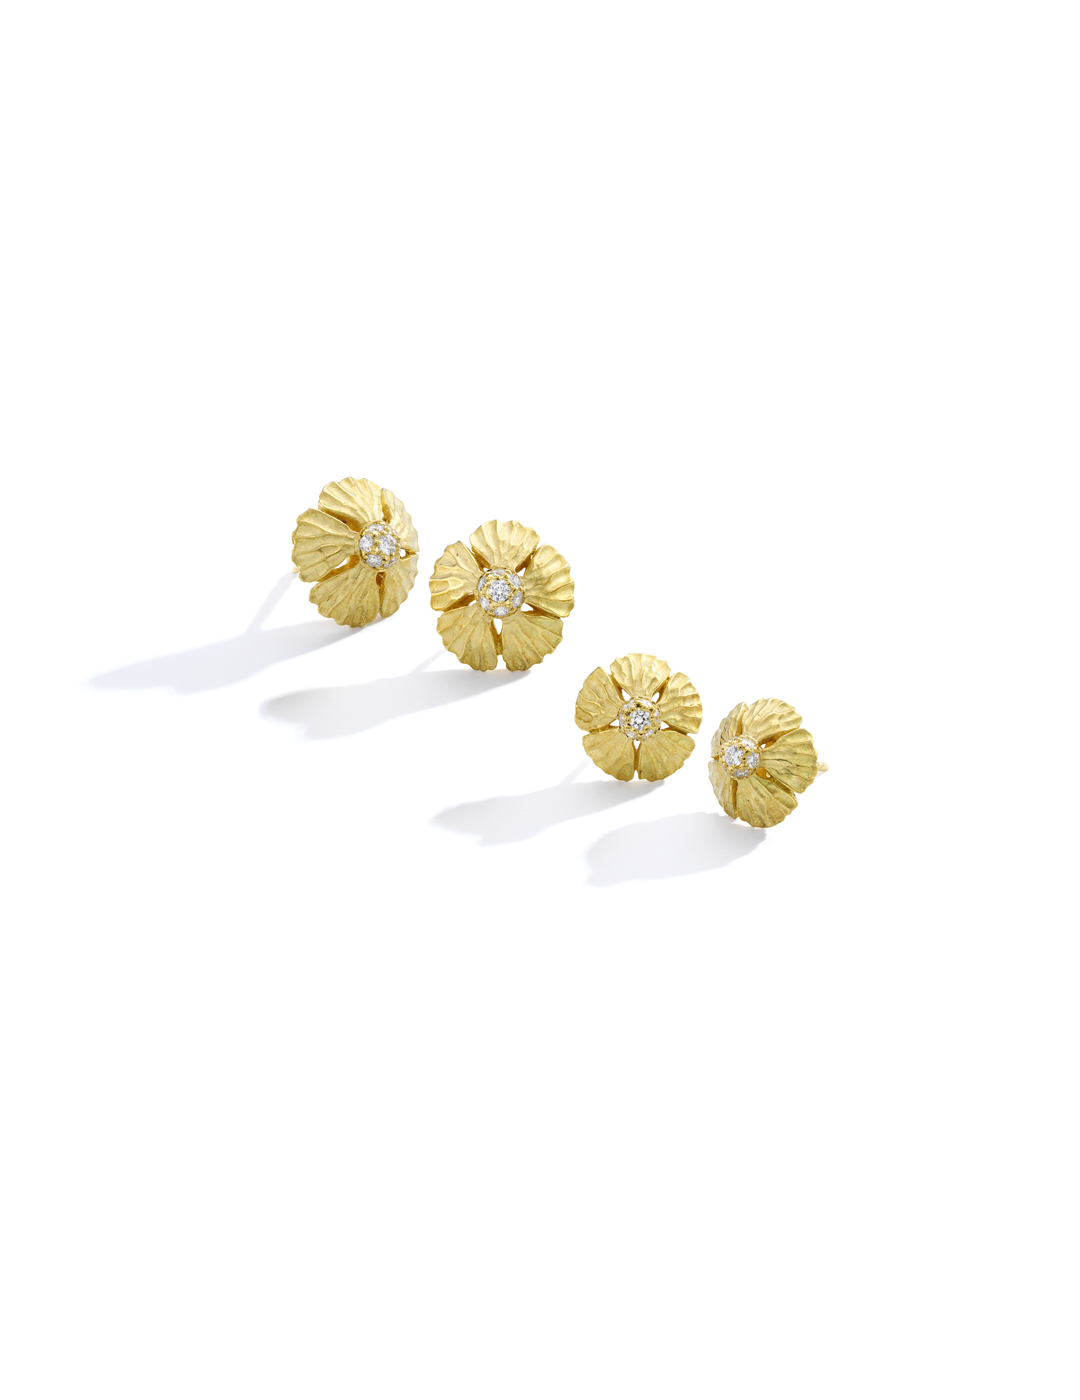 mish_products_earrings_StrawFlwr-Dome-Med Stud-ER-Editorial-1